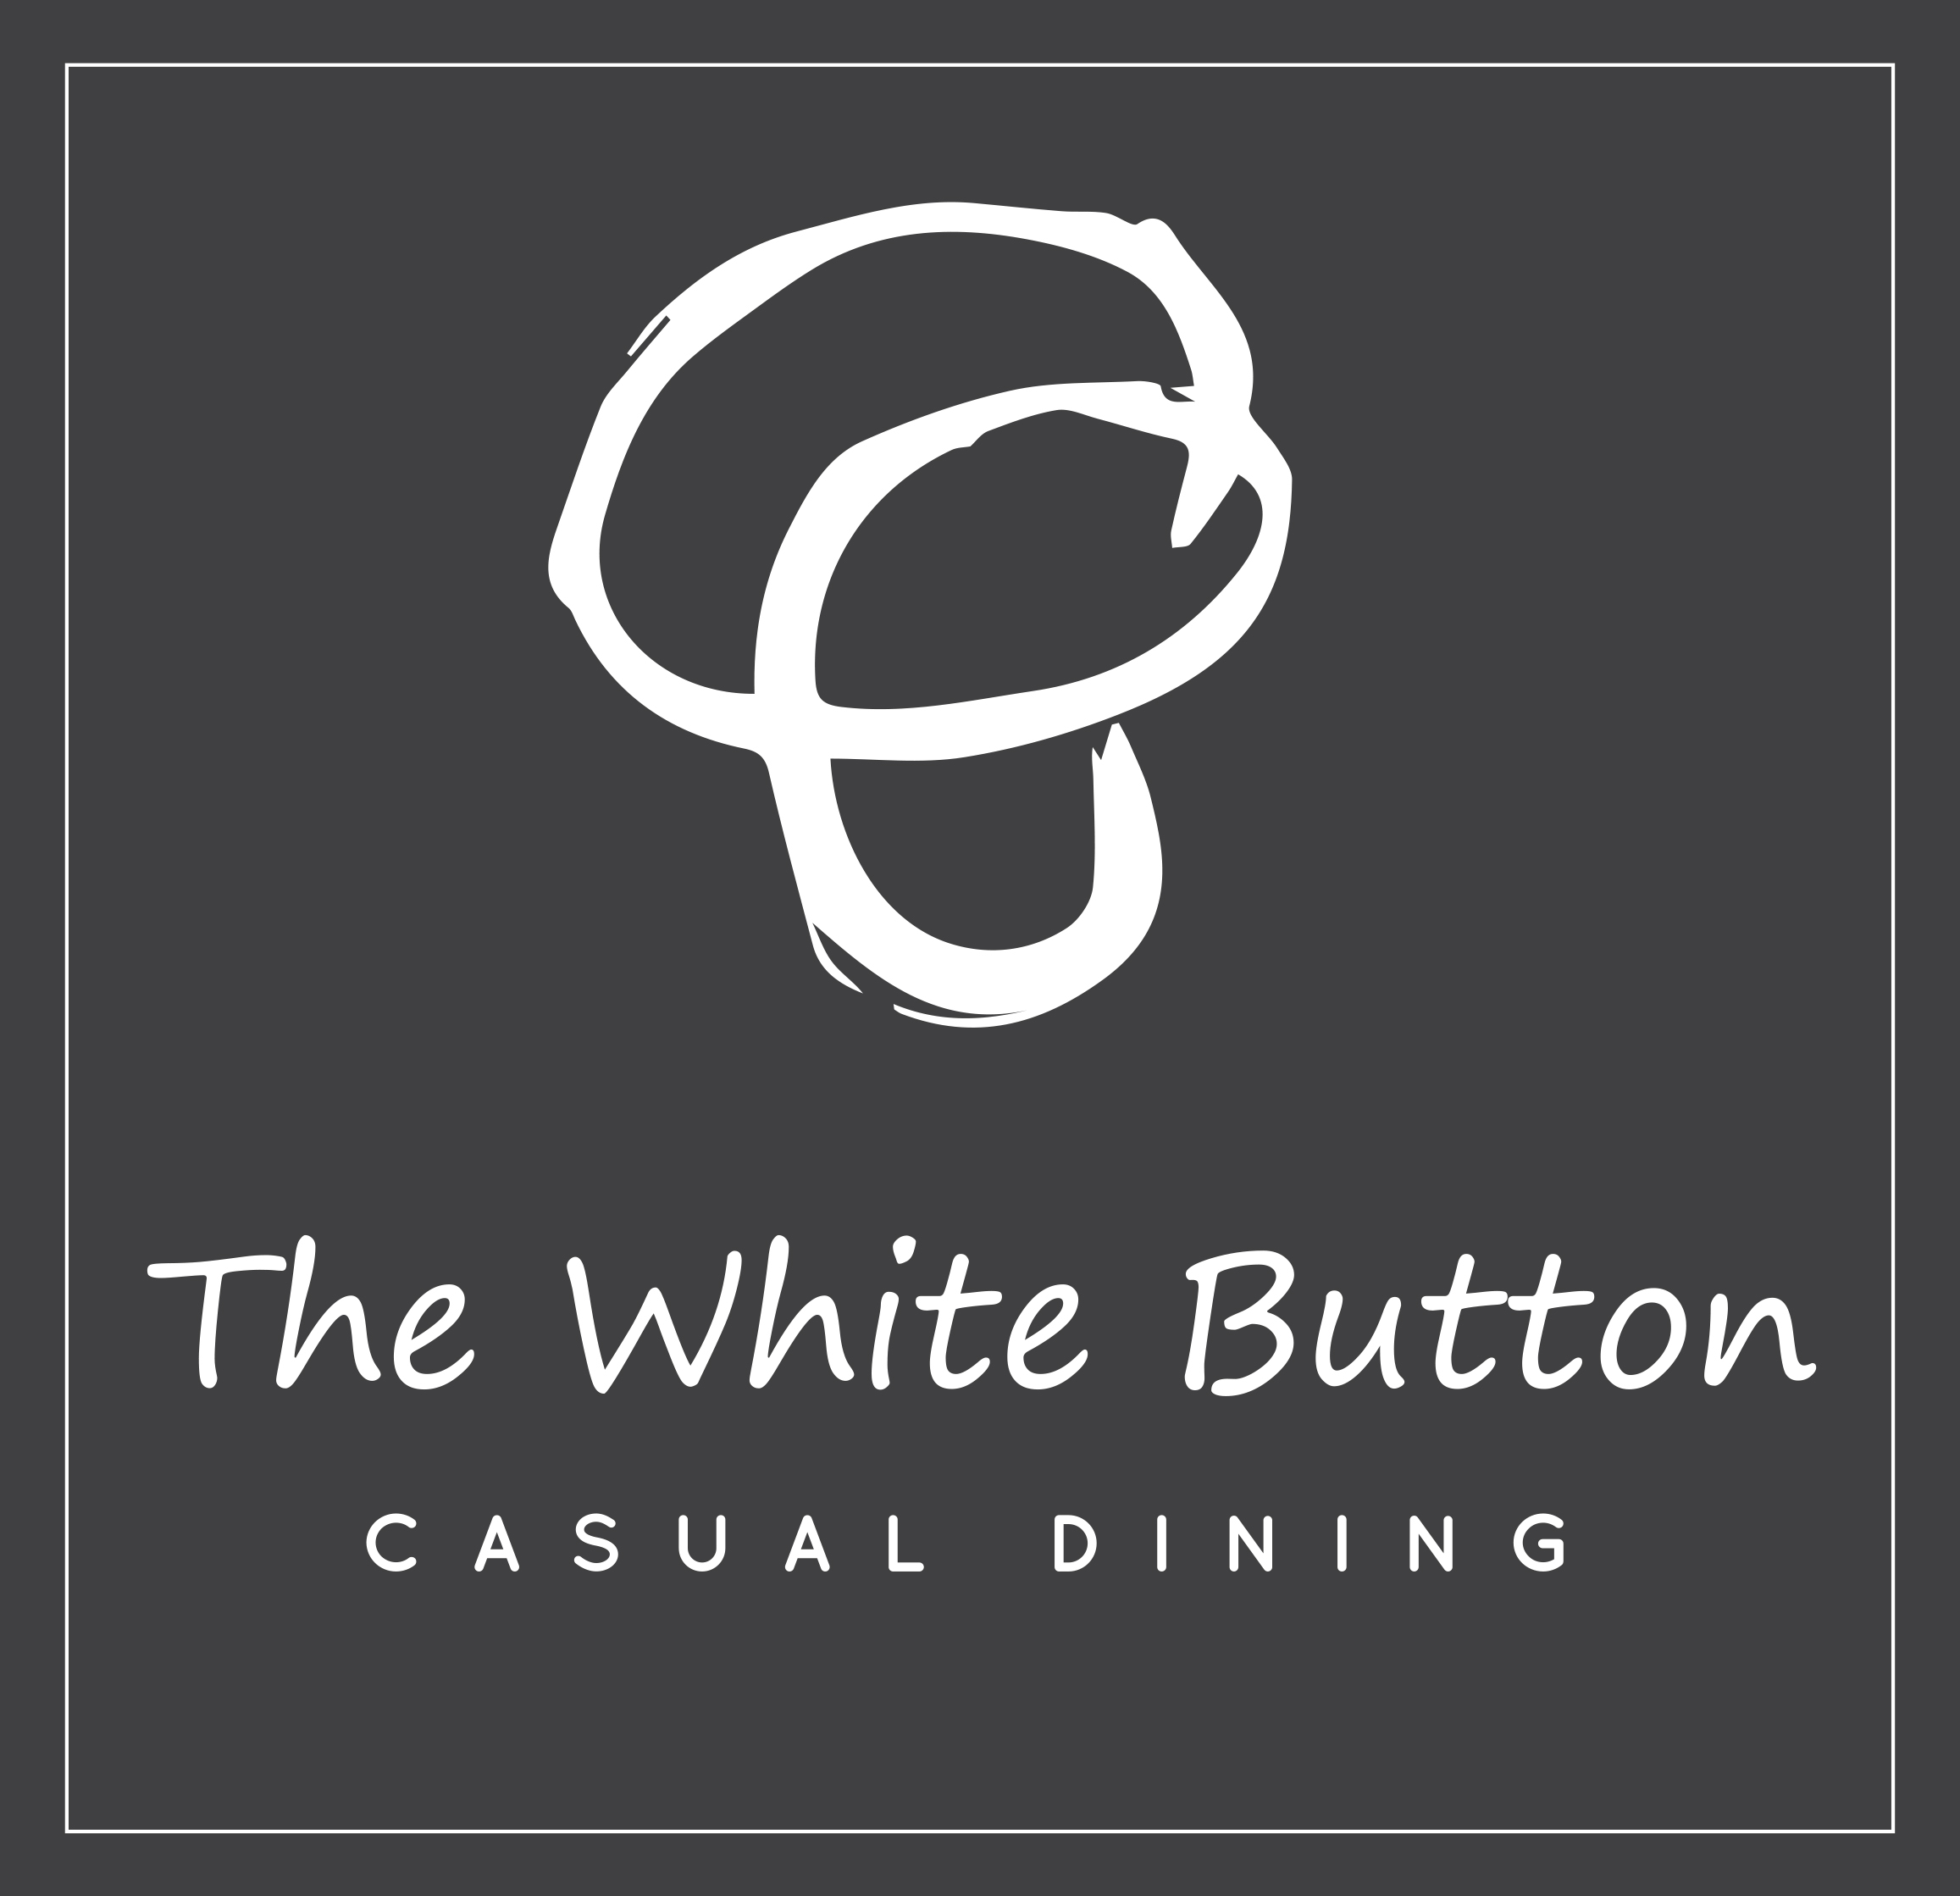 The White Button Casual Dining